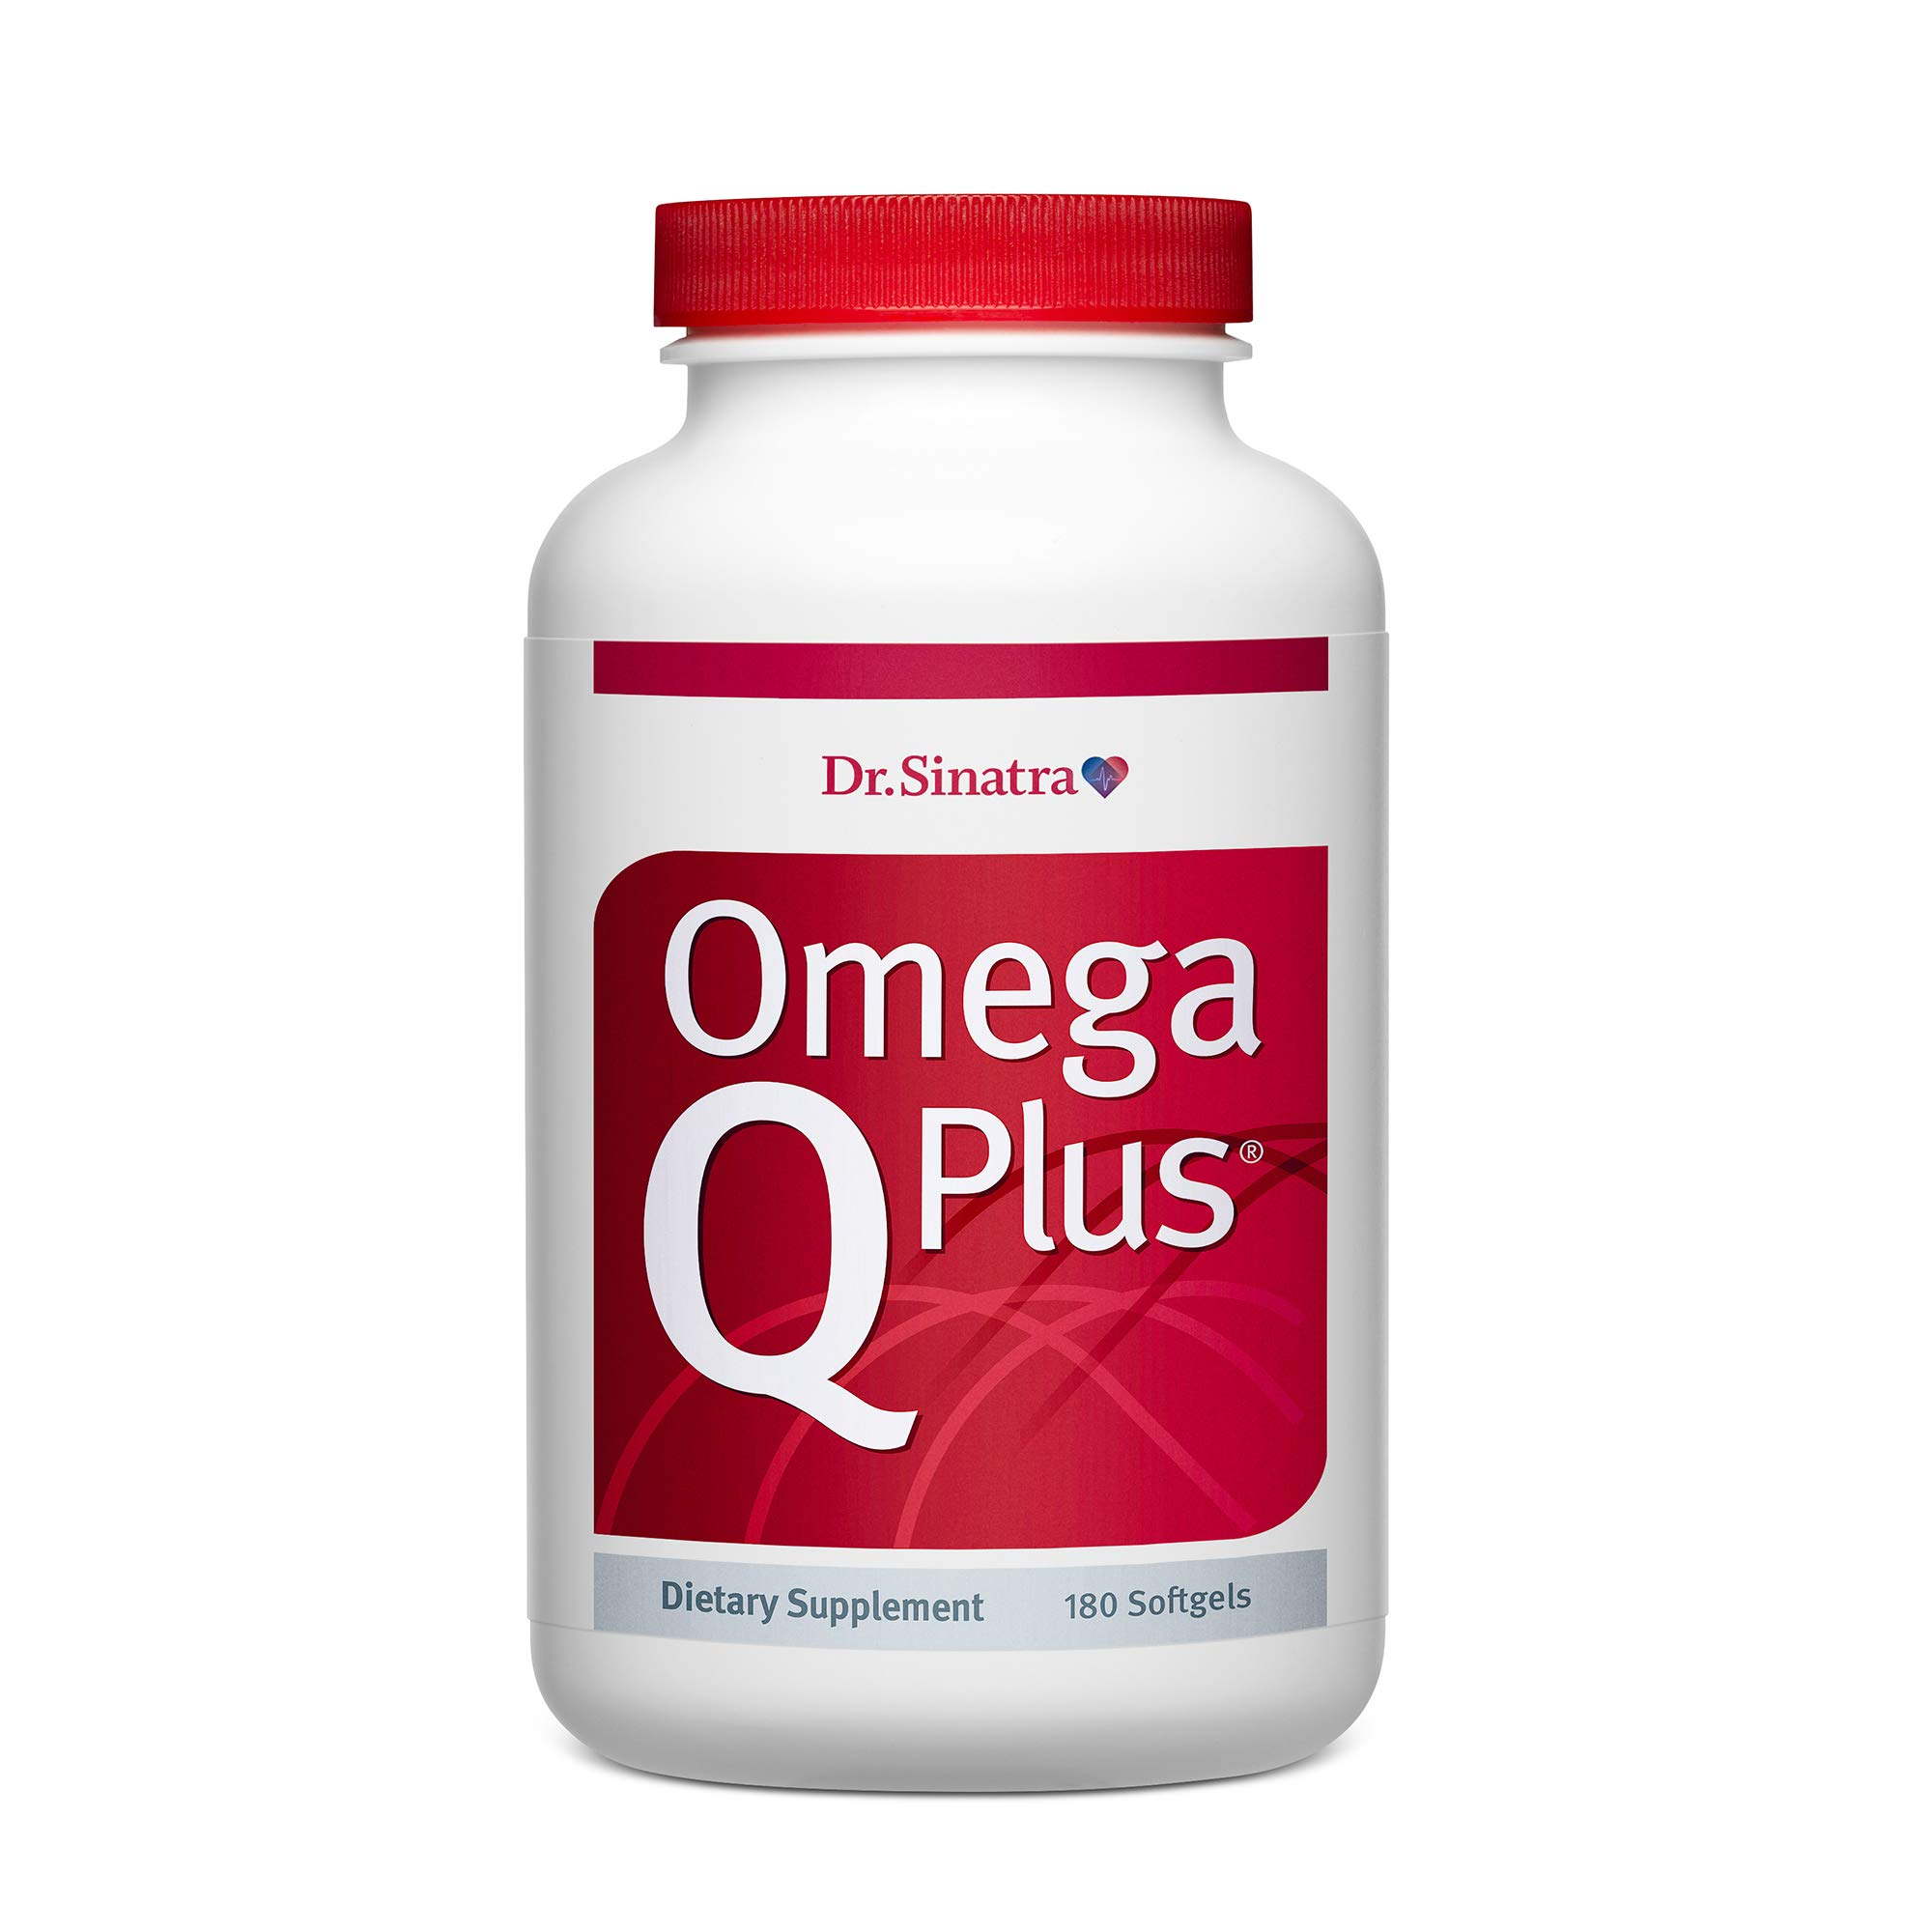 Dr. Sinatra's Omega Q Plus– Omega-3 and CoQ10 Supplement Delivers Everyday Heart Health Support with 50 mg of CoQ10 for Healthy Blood Flow, Blood Pressure and Provides Antioxidant Power (180 softgels)